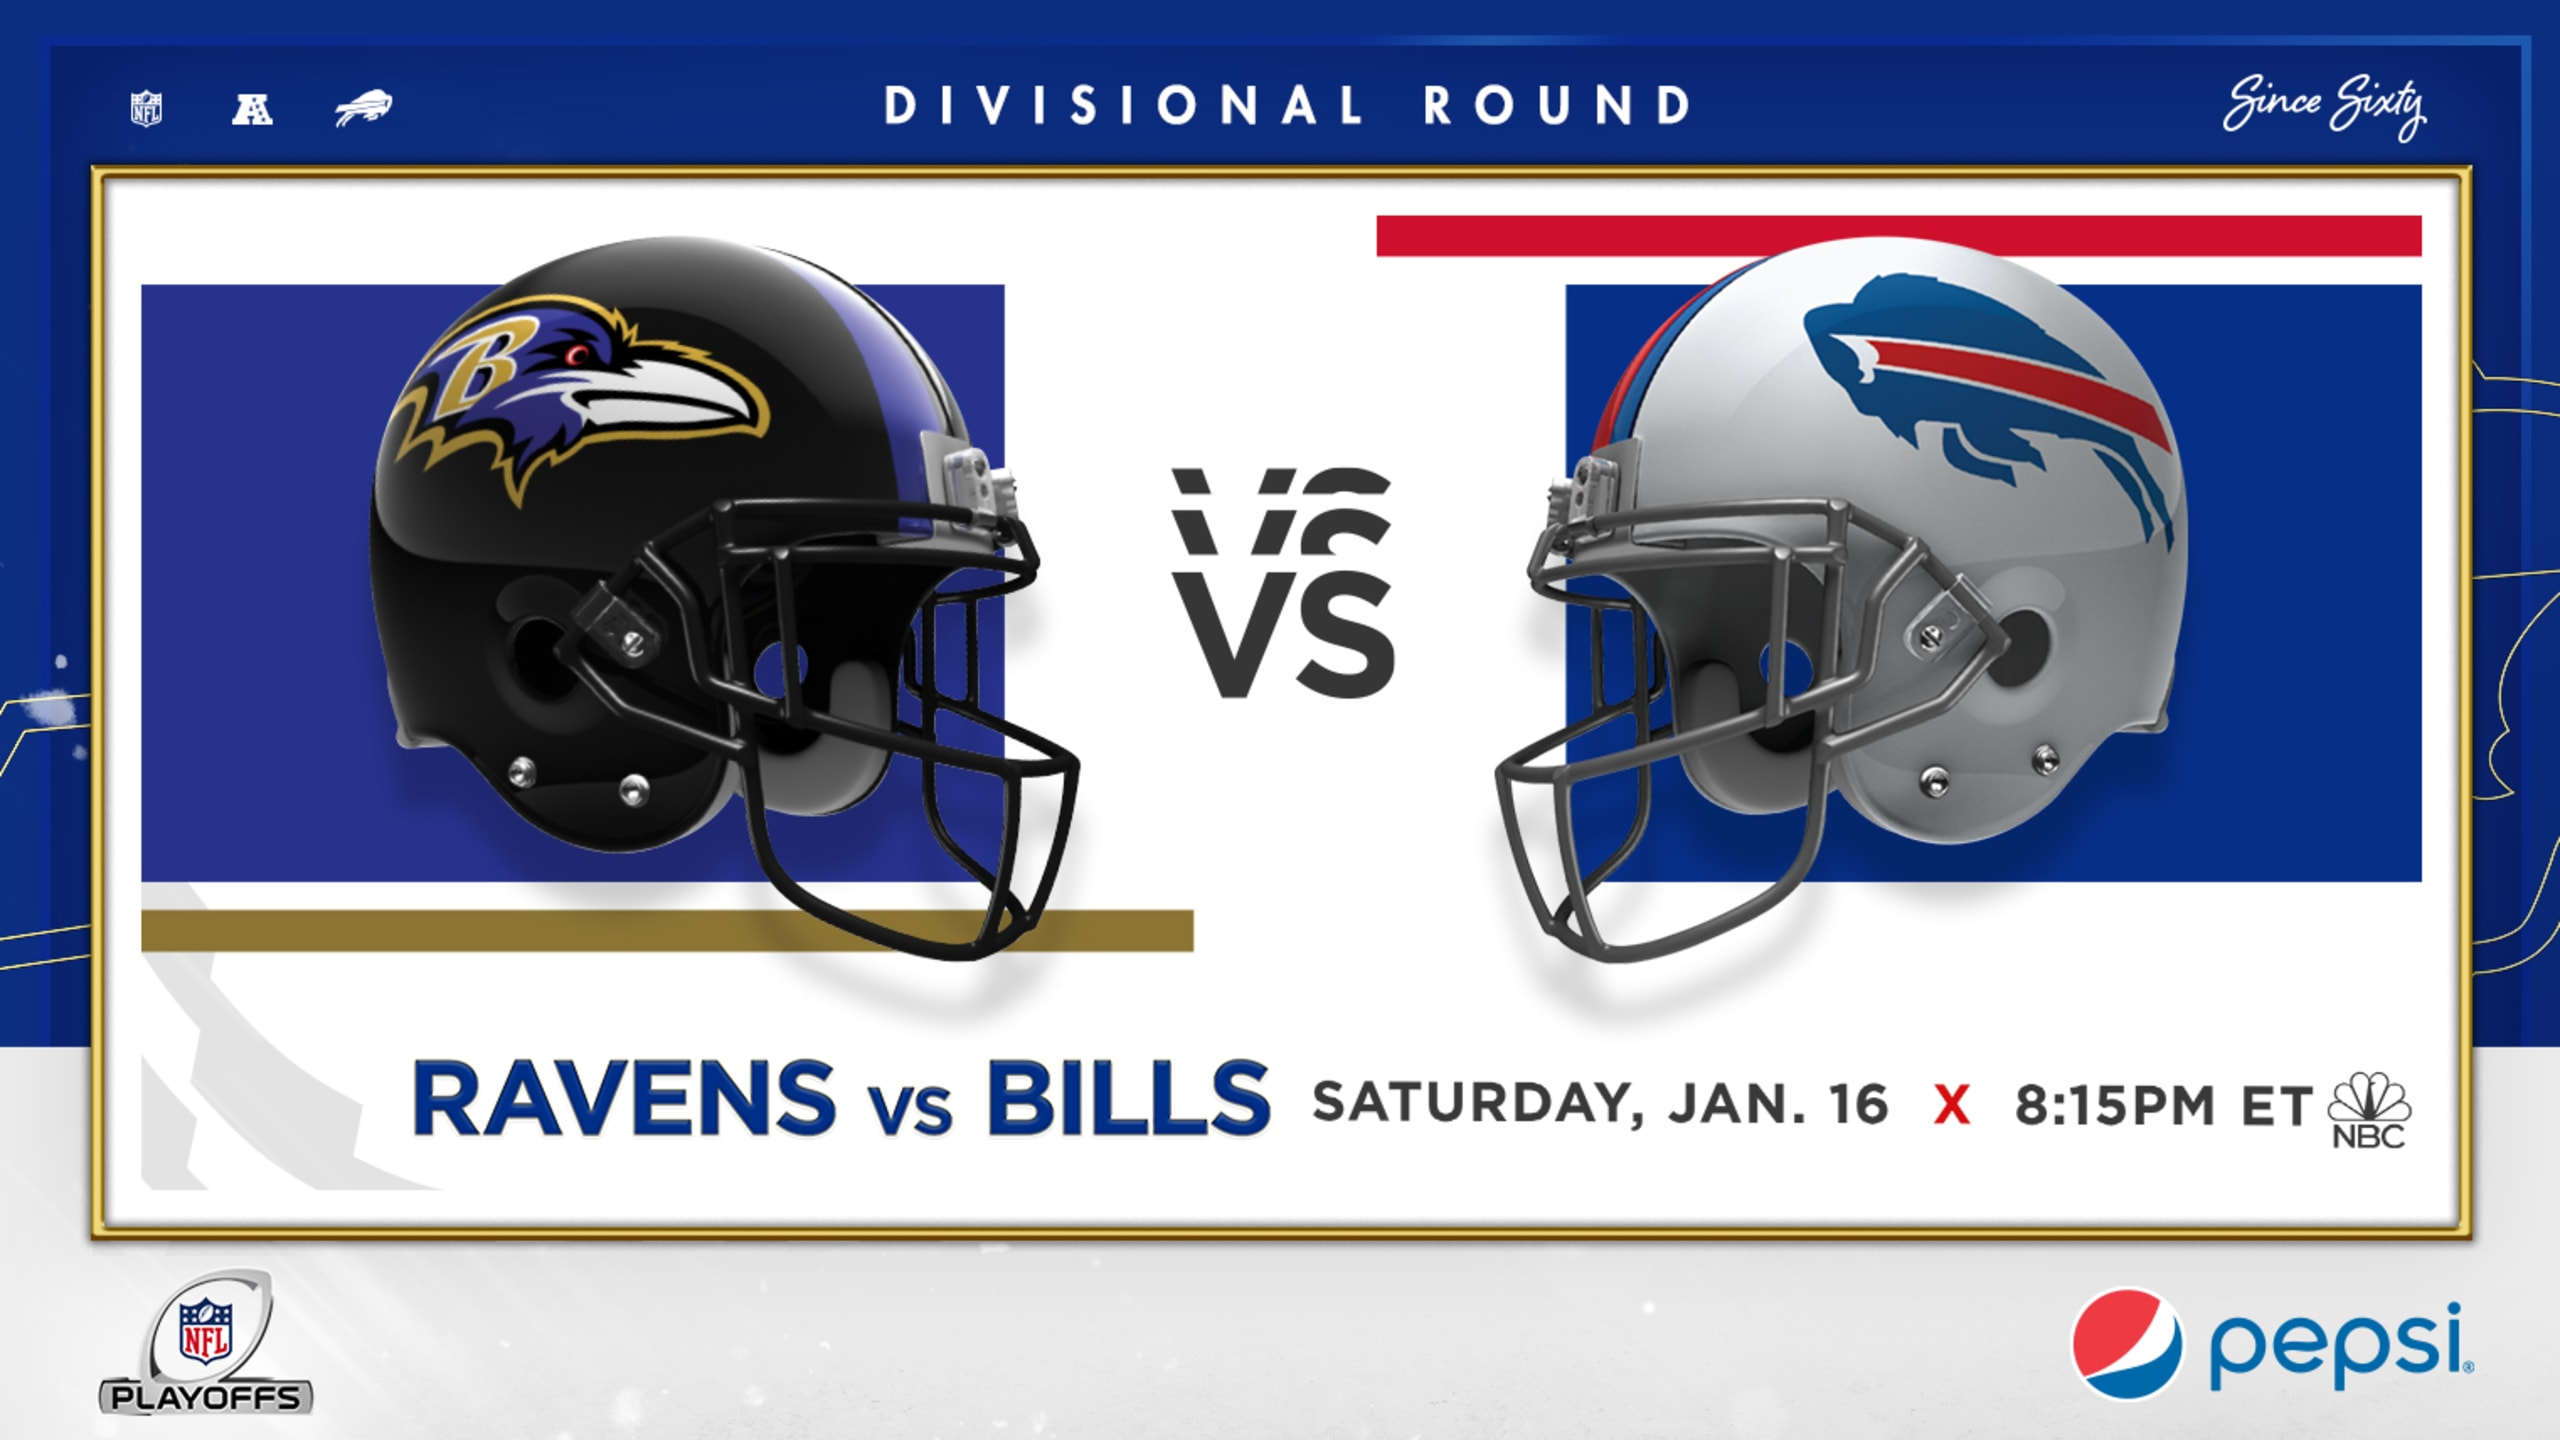 Bills divisional playoff game set for 8:15 pm on Saturday night